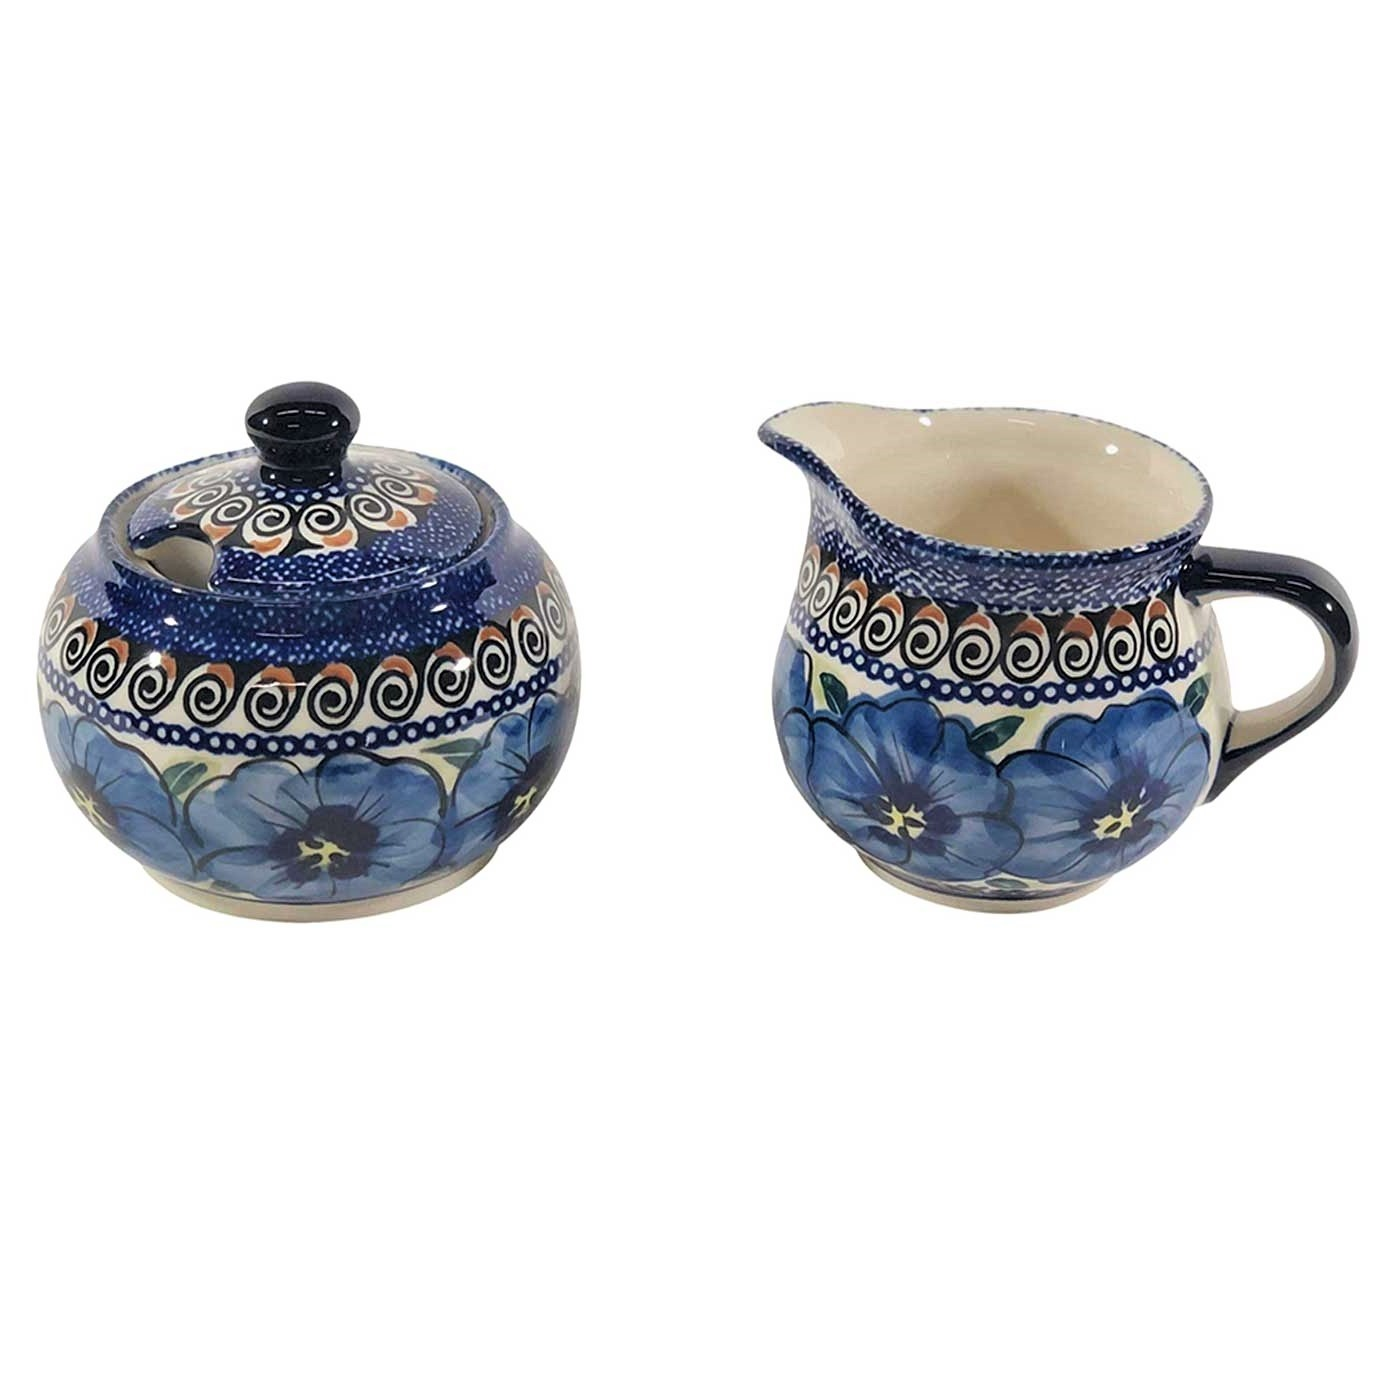 Pottery Avenue Stoneware Stackable Cream & Sugar Set - 694-945 148AR Blue Pansy